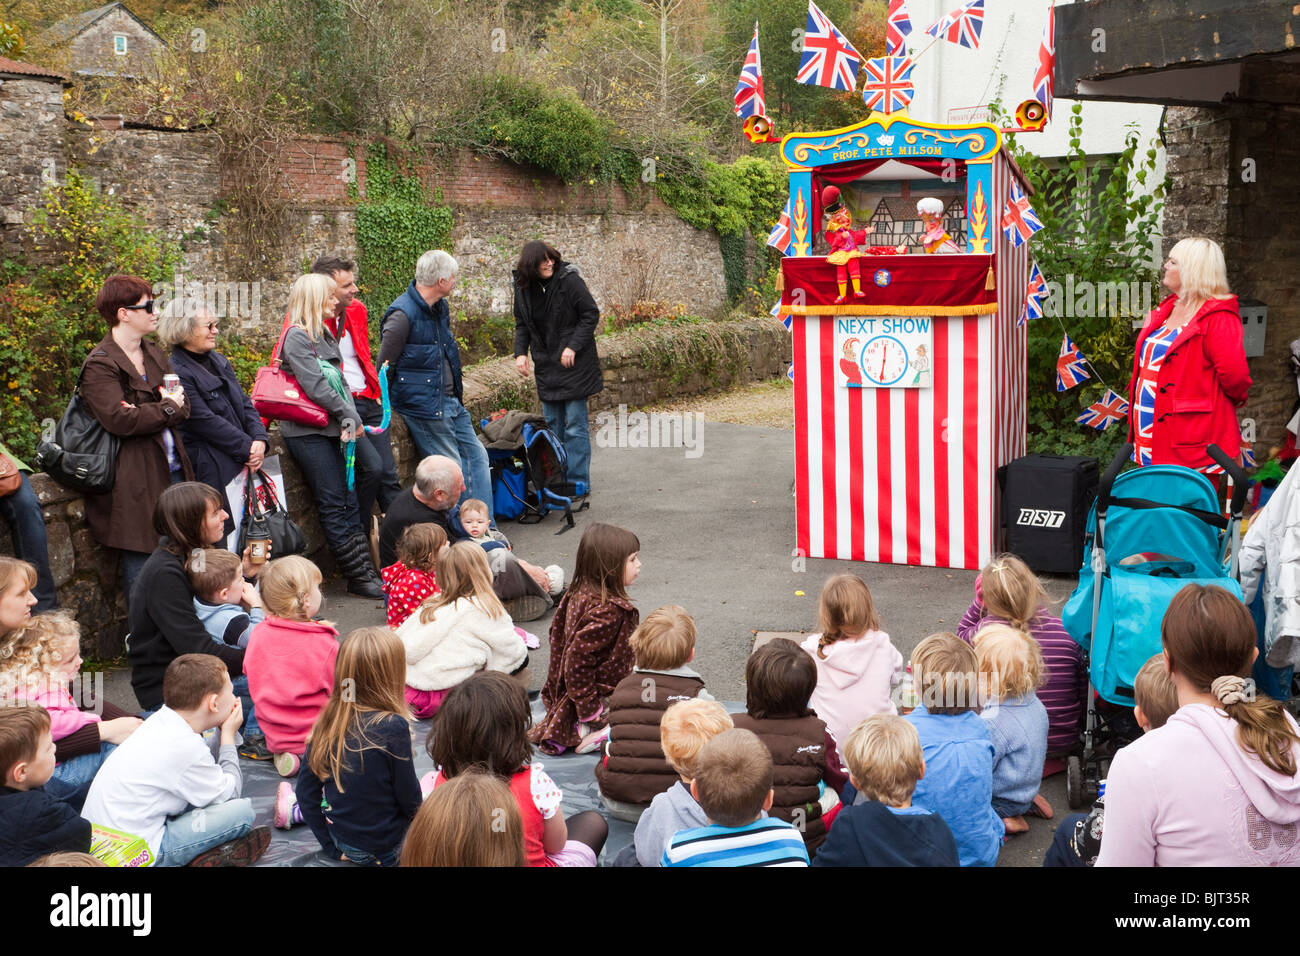 A traditional Punch and Judy show being performed at the Bampton Charter Fair, held every October in Bampton, Devon - Stock Image